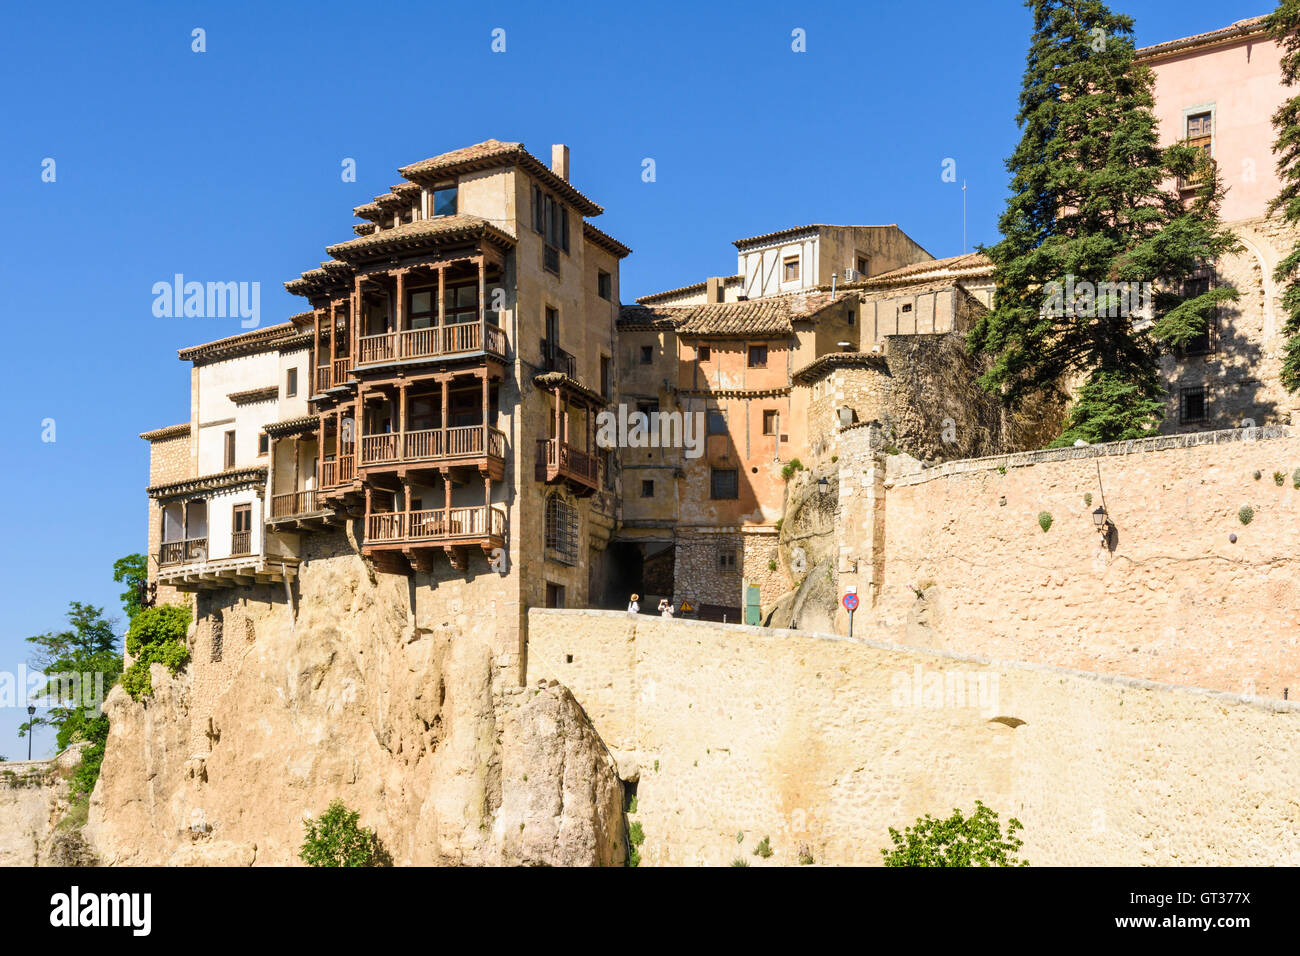 The hanging houses of Cuenca overlooking the Huecar Gorge, Cuenca, Castilla La Mancha, Spain - Stock Image